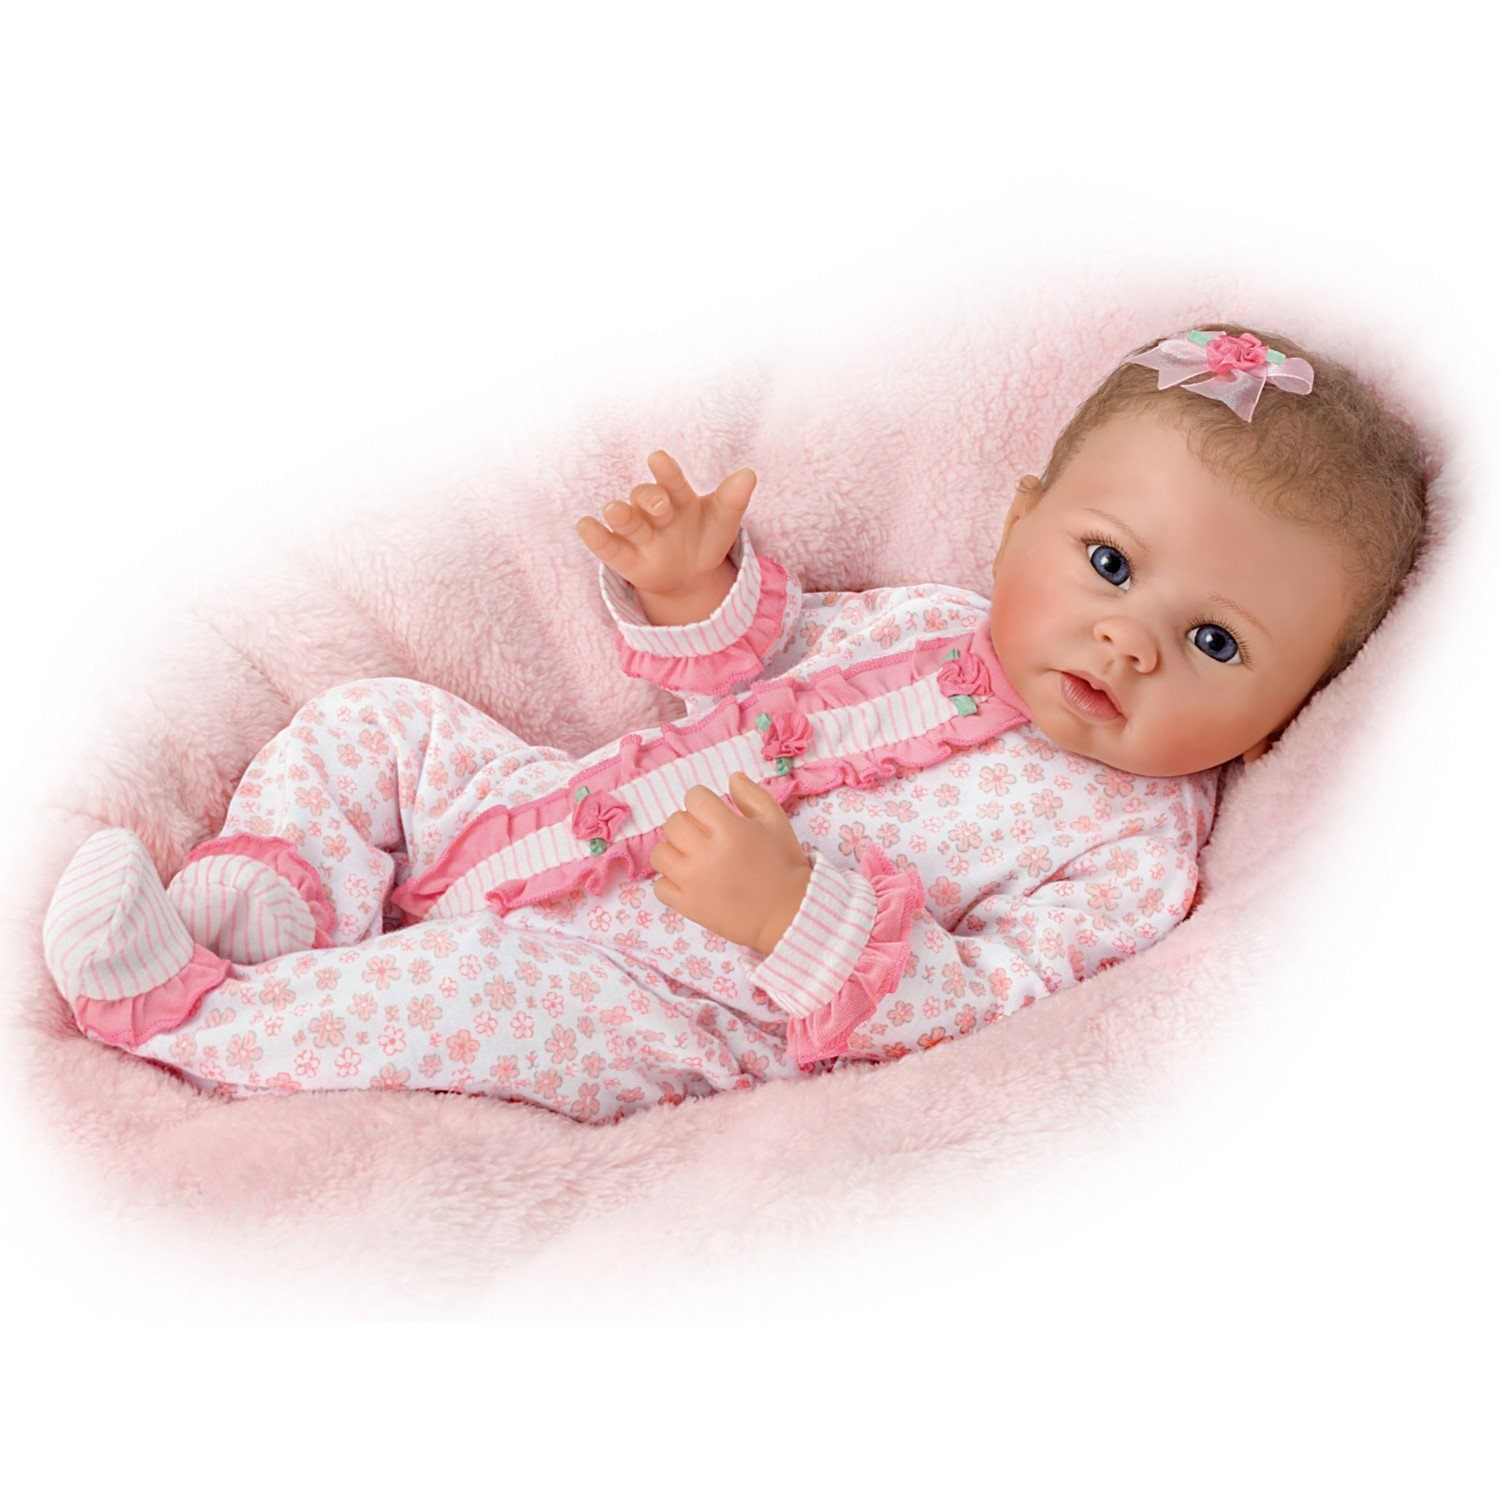 Katie Breathes, Coos and has a Heartbeat - So Truly Real® Lifelike, Interactive & Realistic Weighted Newborn Baby Doll 19-inches  by The Ashton-Drake Galleries